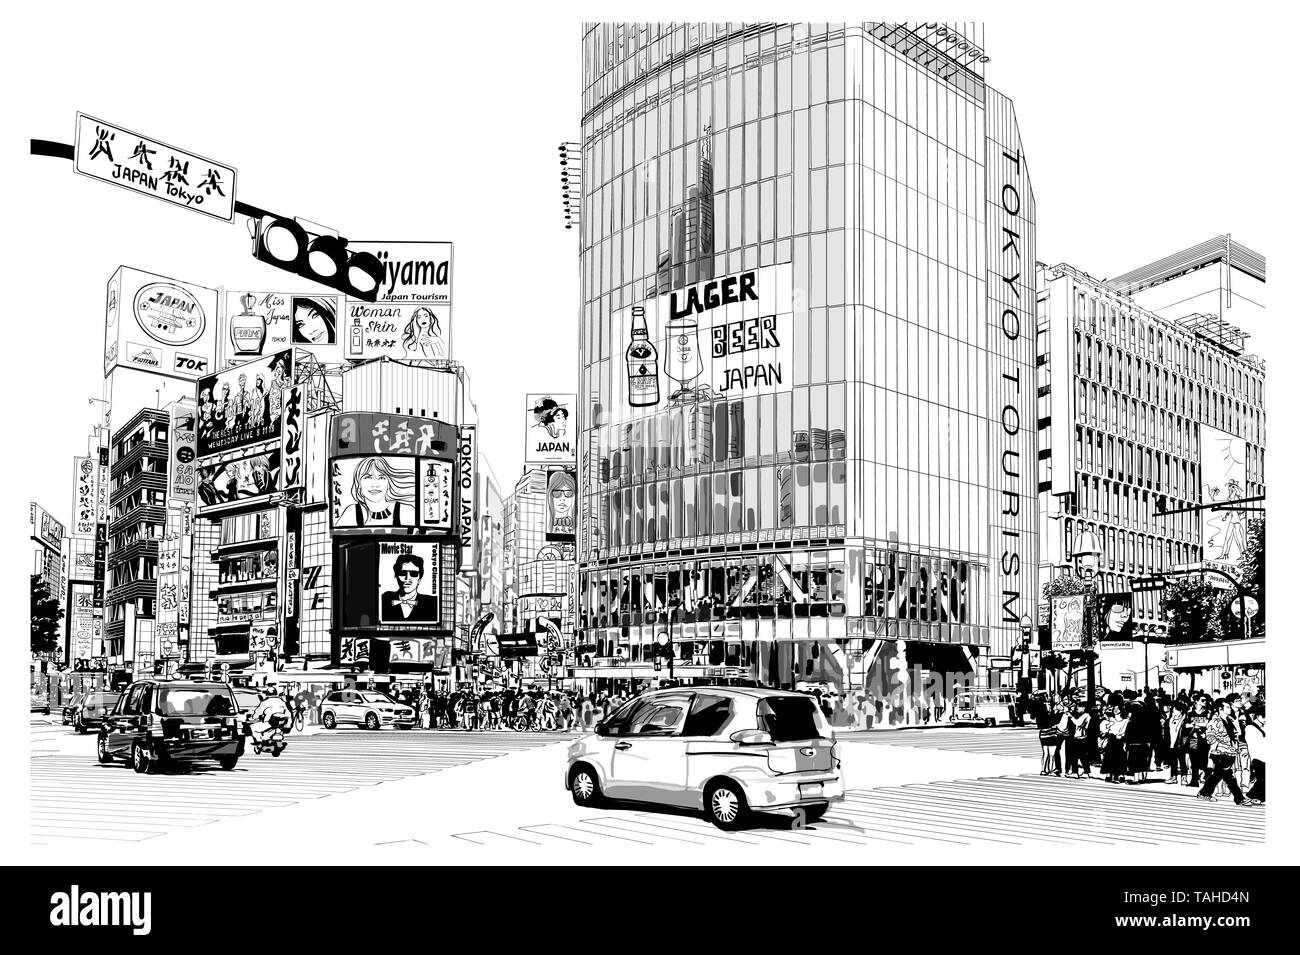 TOKYO, famous Shibuya crossroad - Vector illustration (all advertisements are fake, all characters are fictitious) - Stock Vector